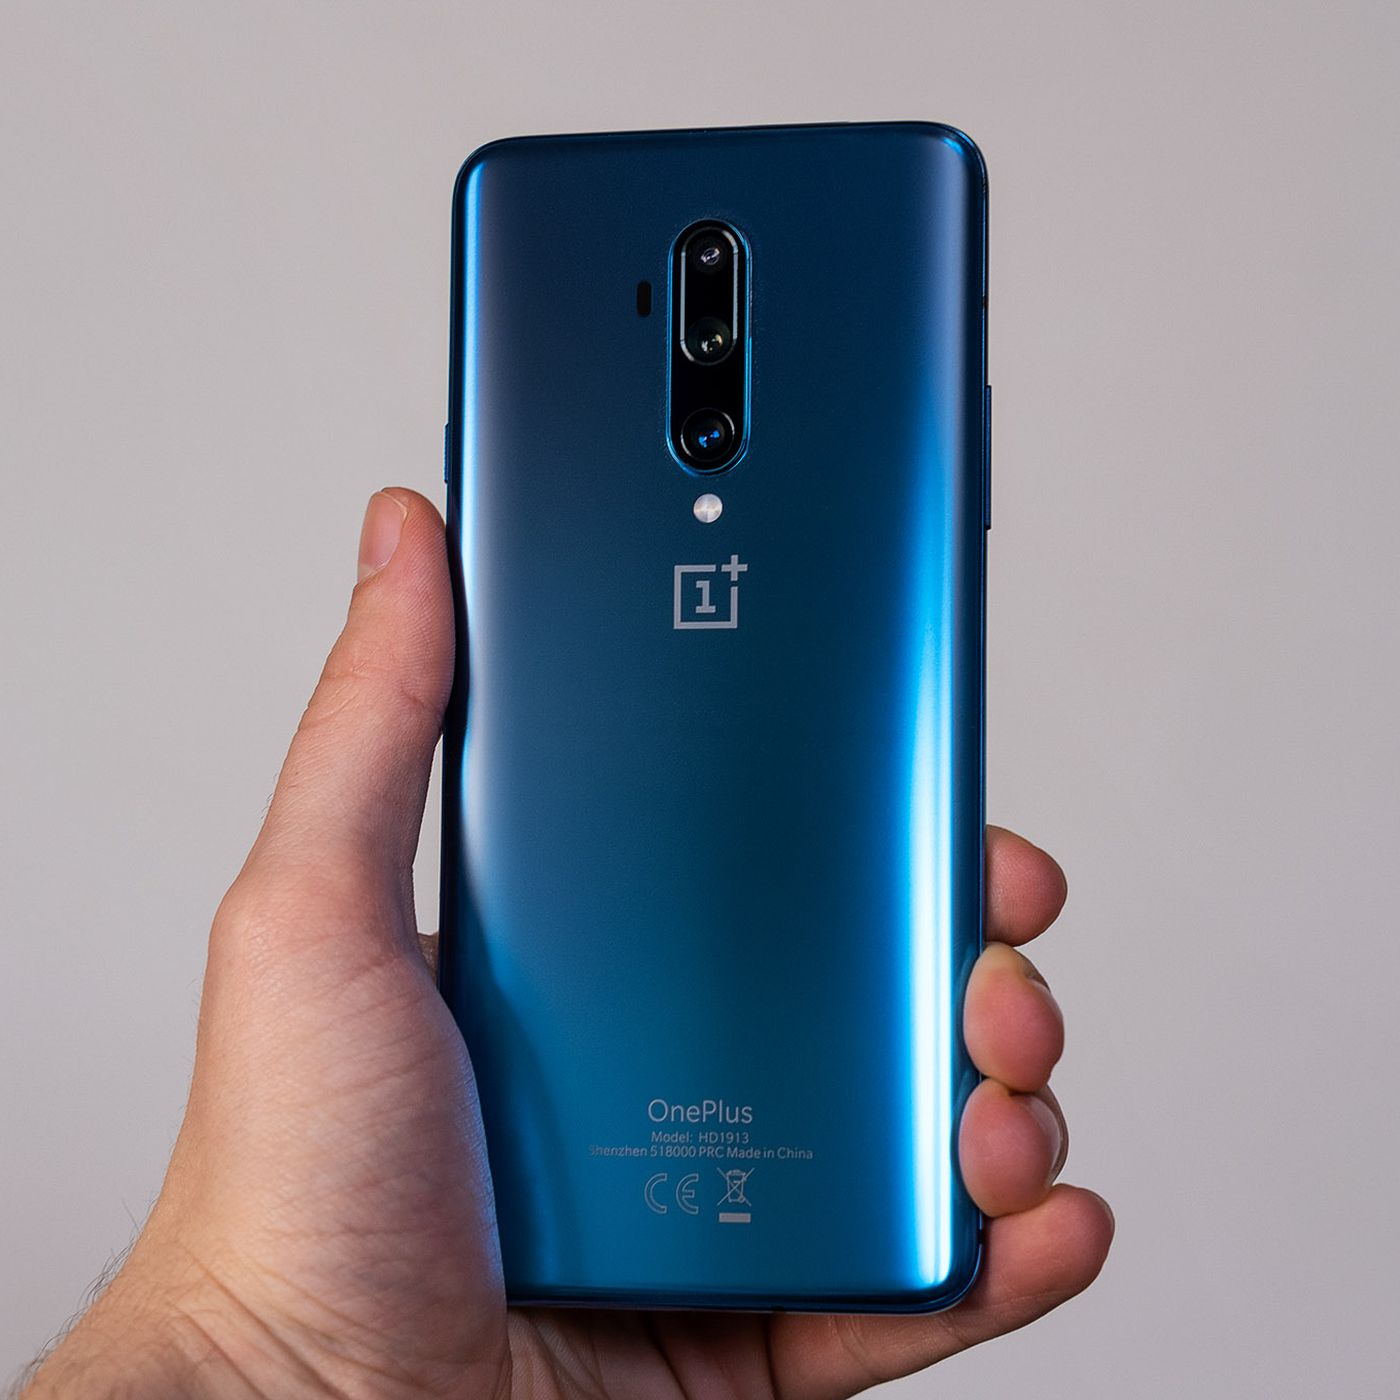 OnePlus keeps all the great features of its last flagship, doesn't add much else.